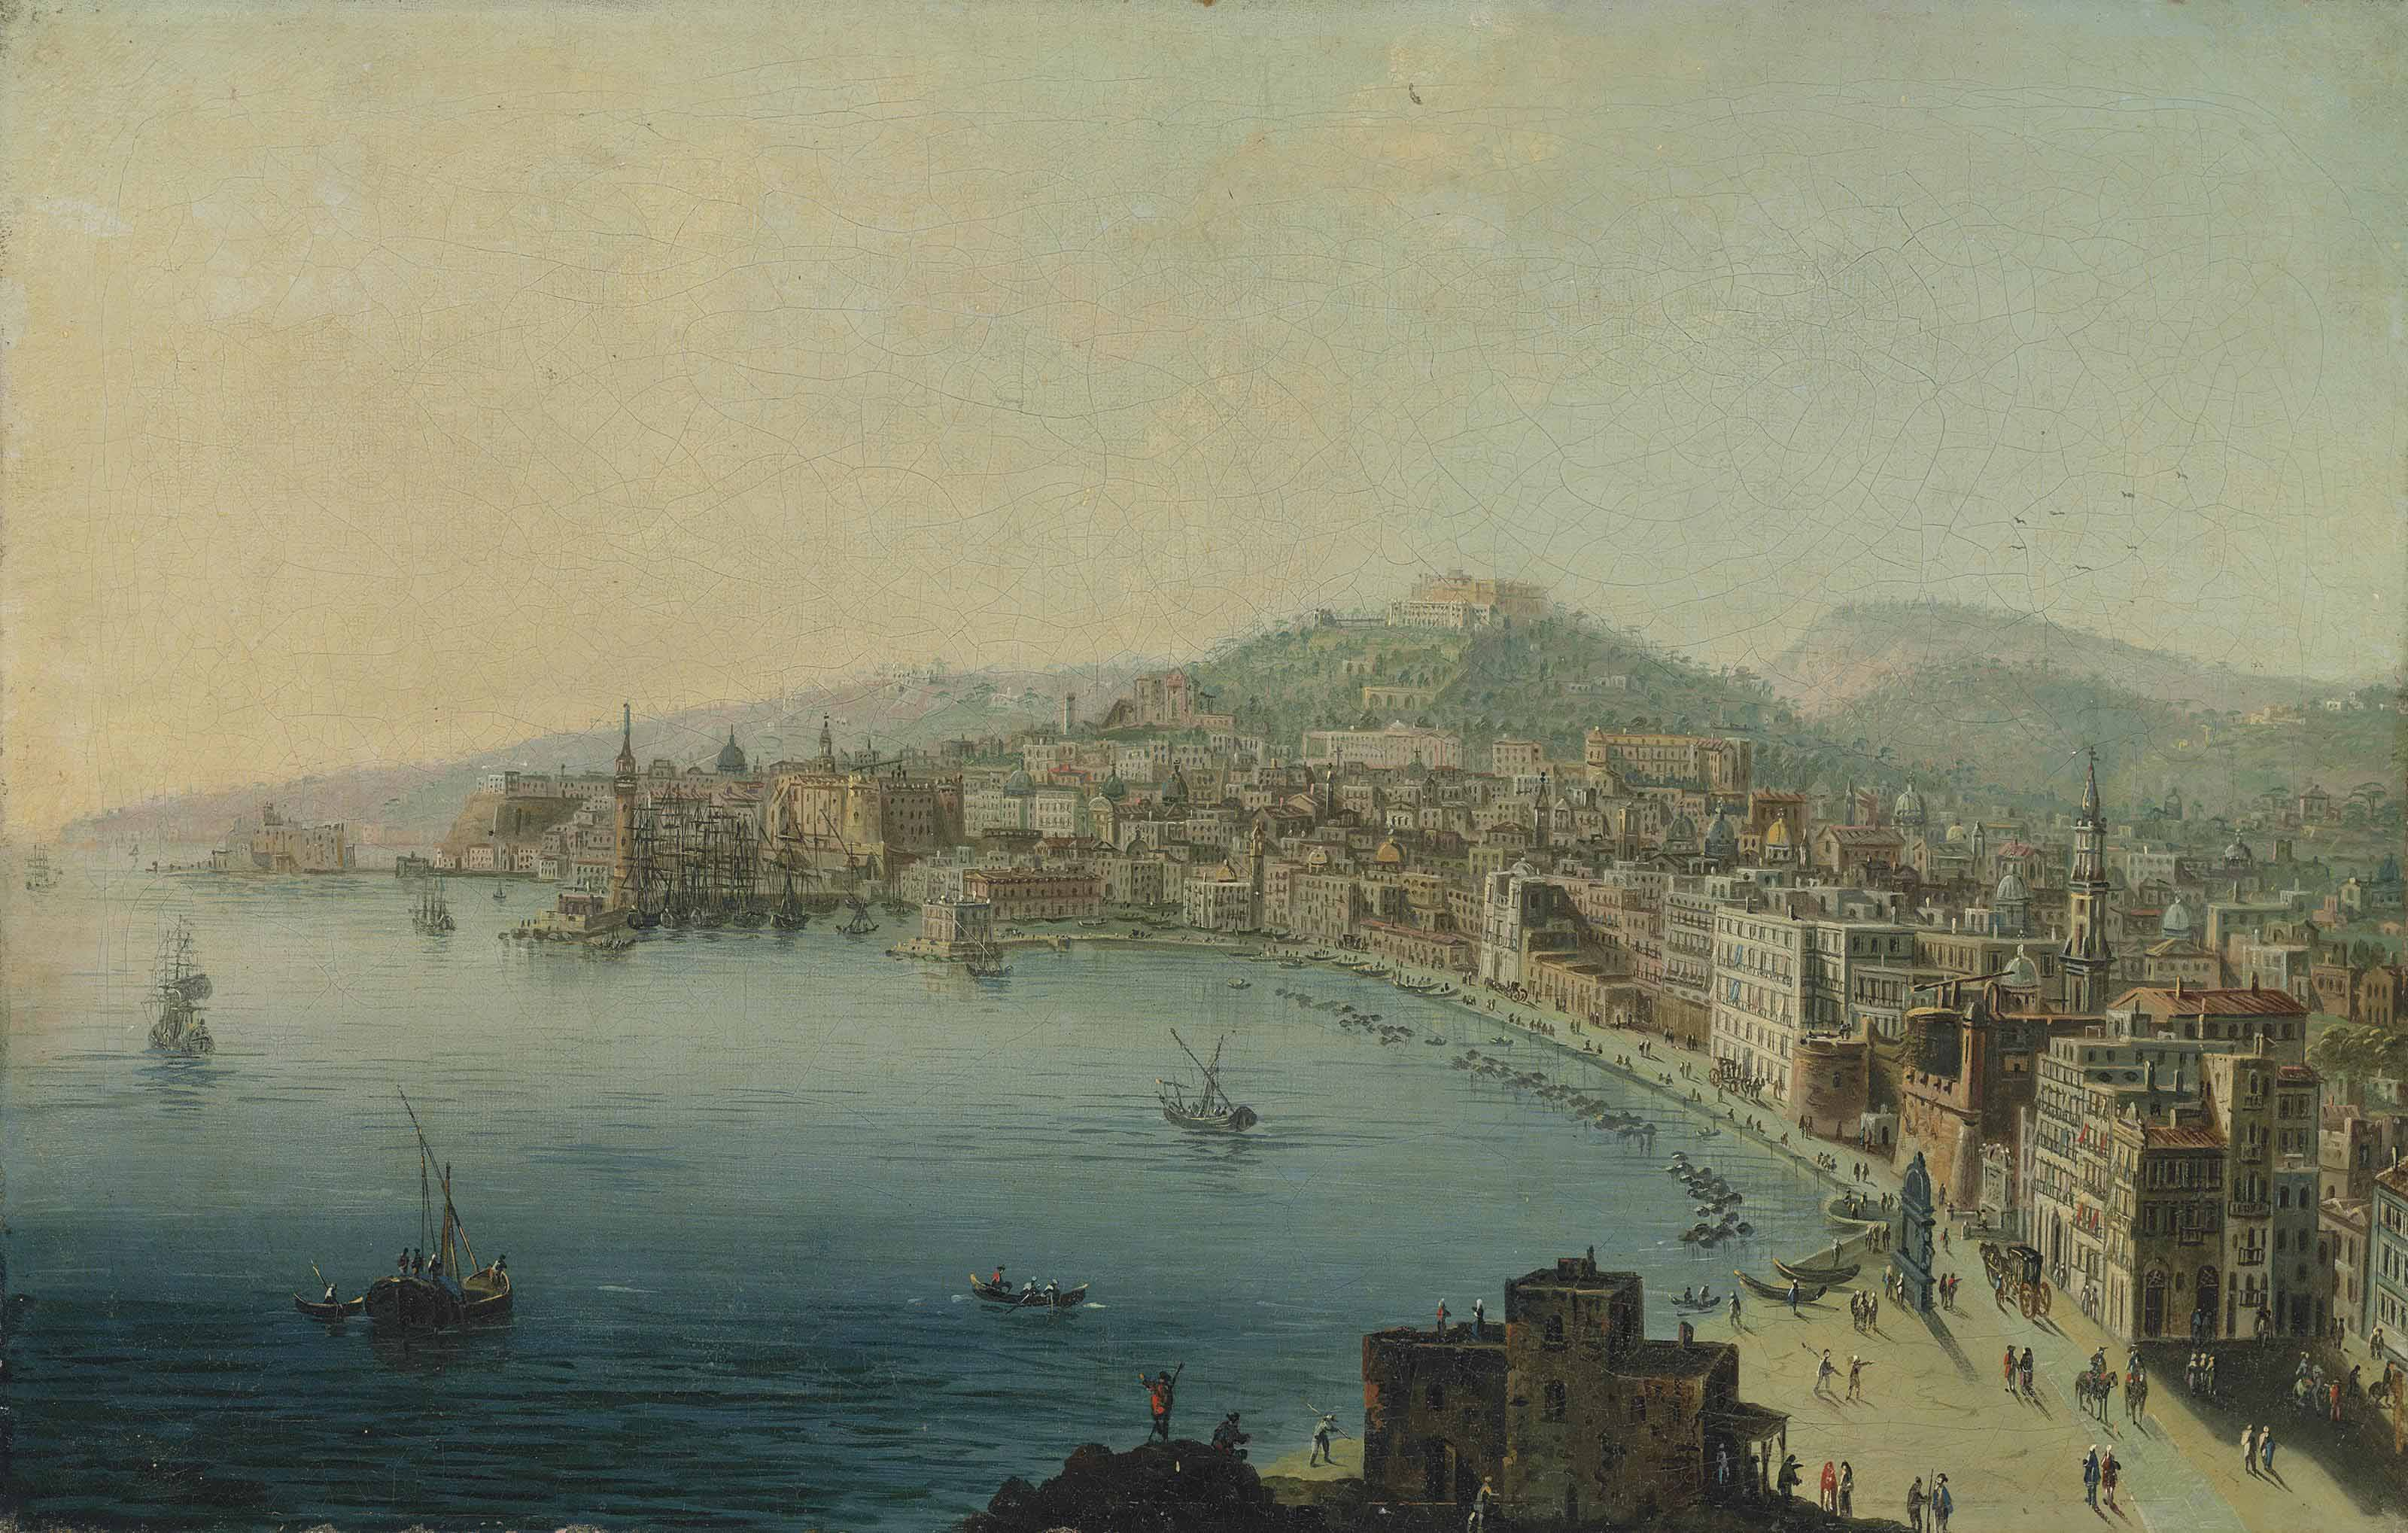 Pietro Antoniani Milan 1740 1805 A view of the Bay of Naples with figures on the Riviera di Chiaia